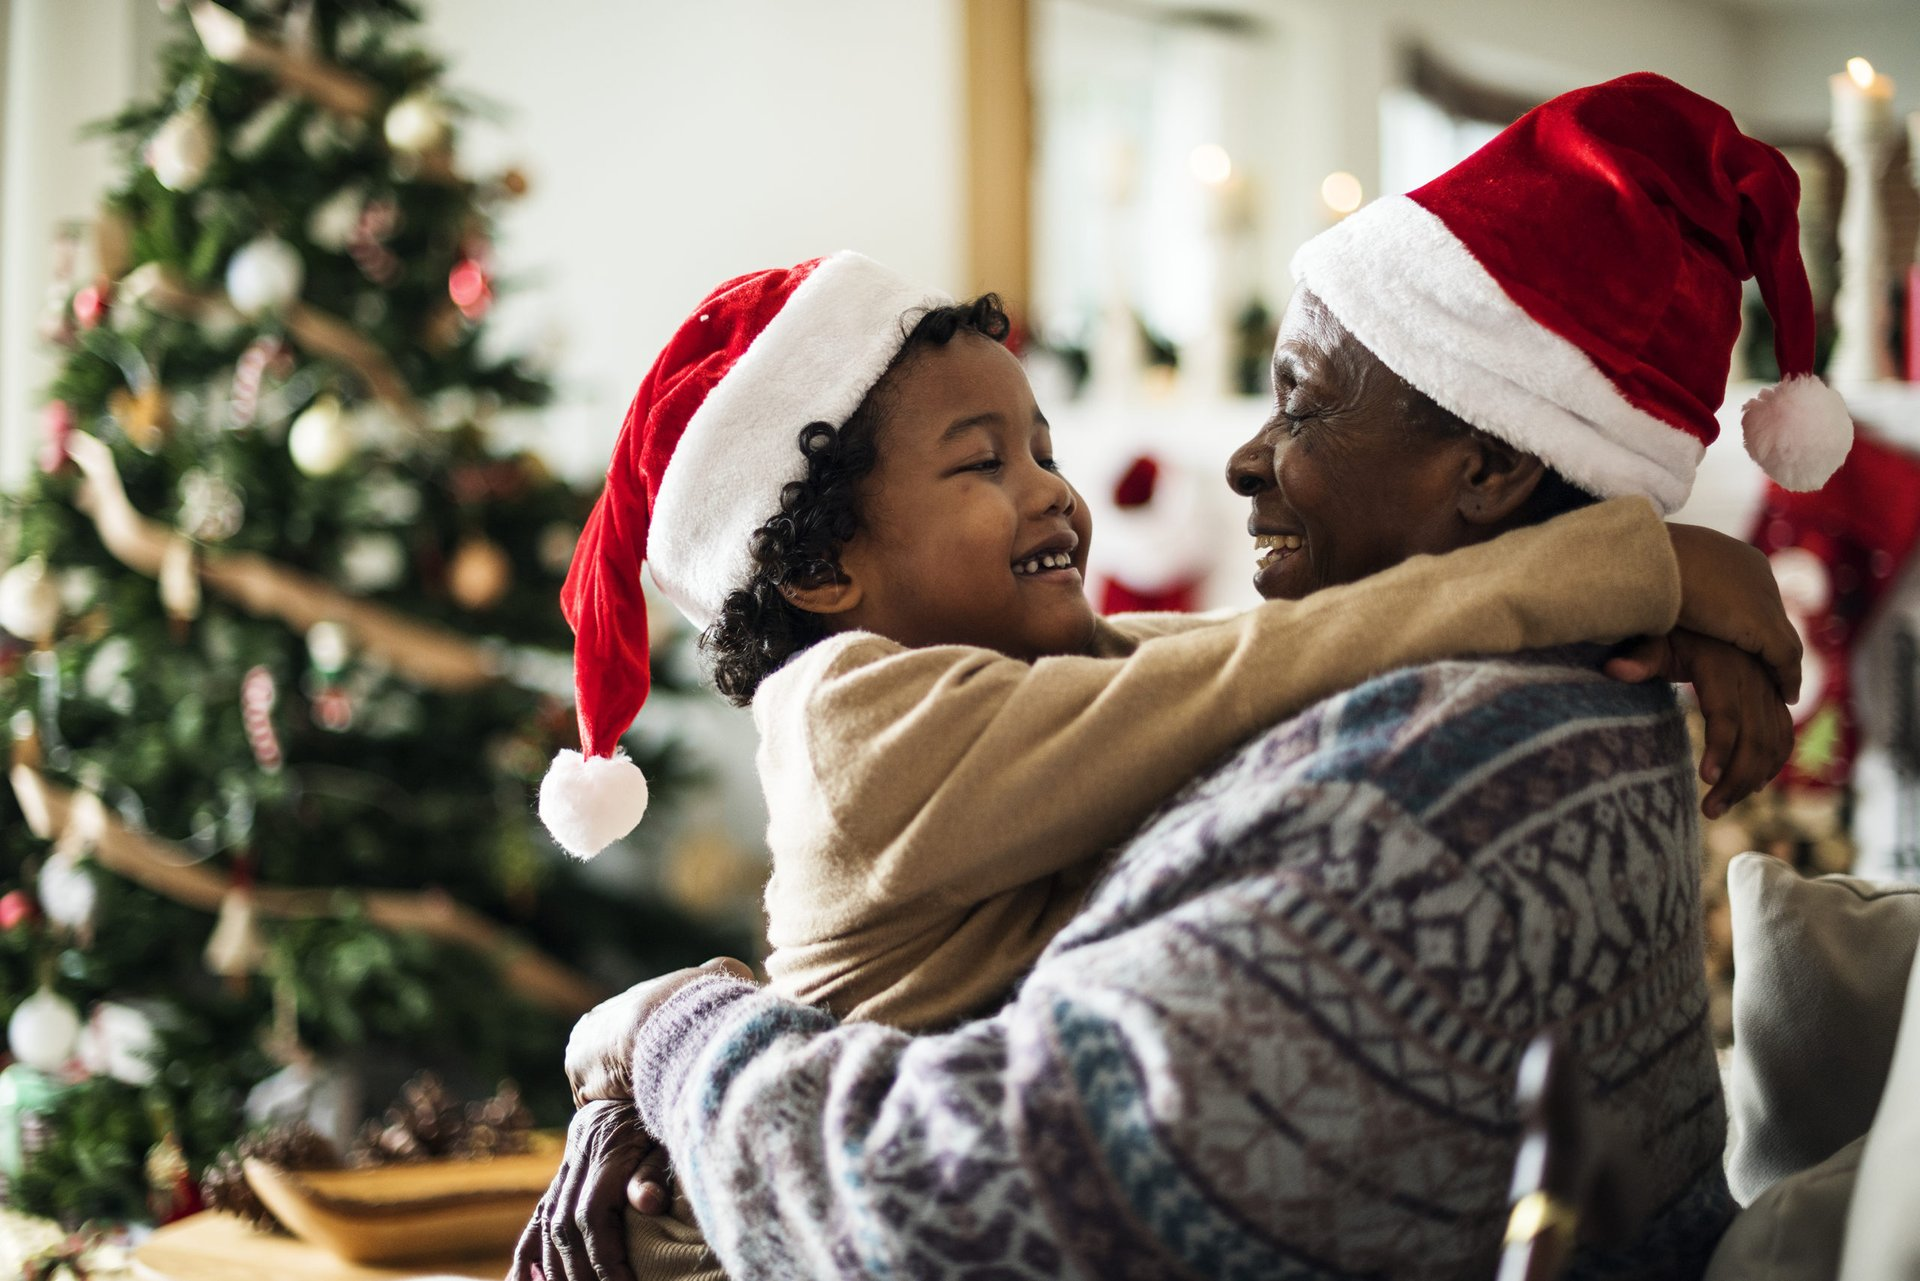 A parent and child in Santa hats hug in front of a Christmas tree